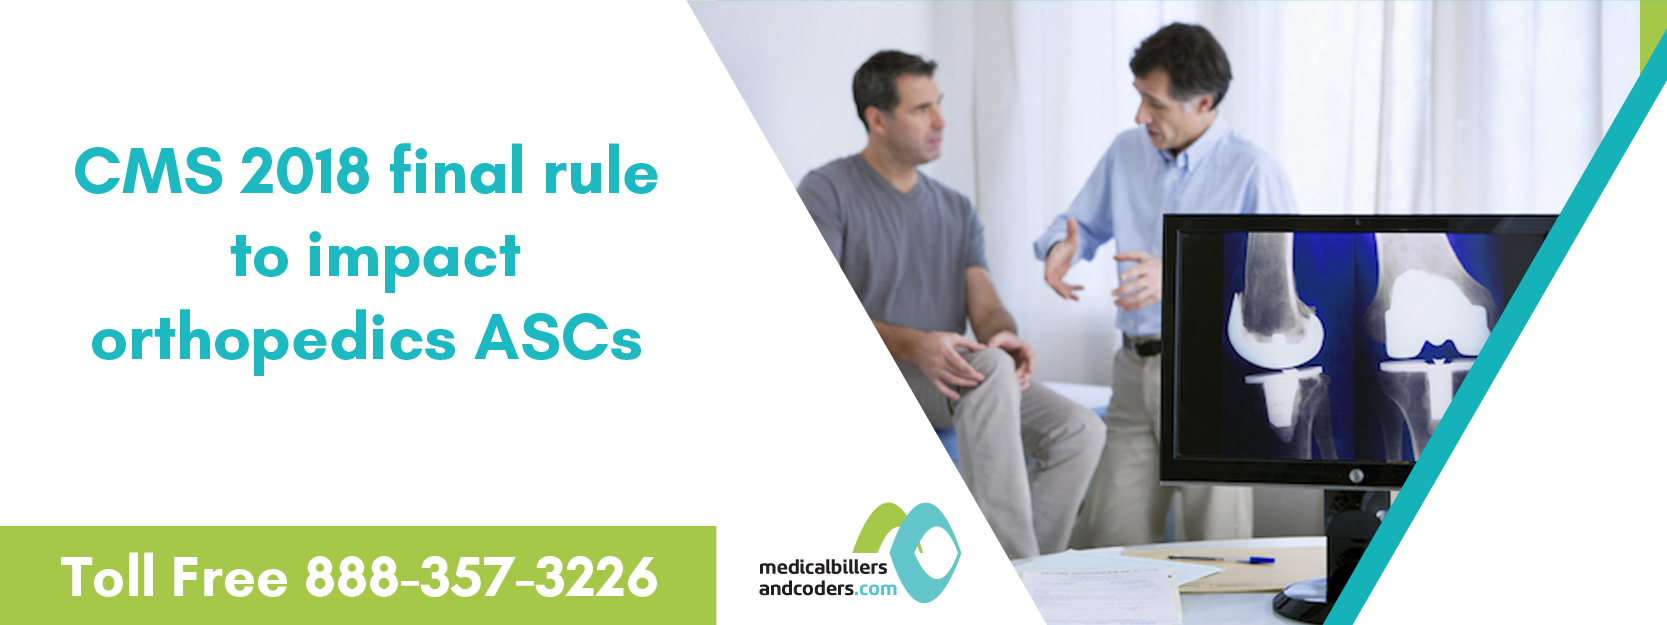 CMS 2018 Final Rule To Impact Orthopedics ASCs